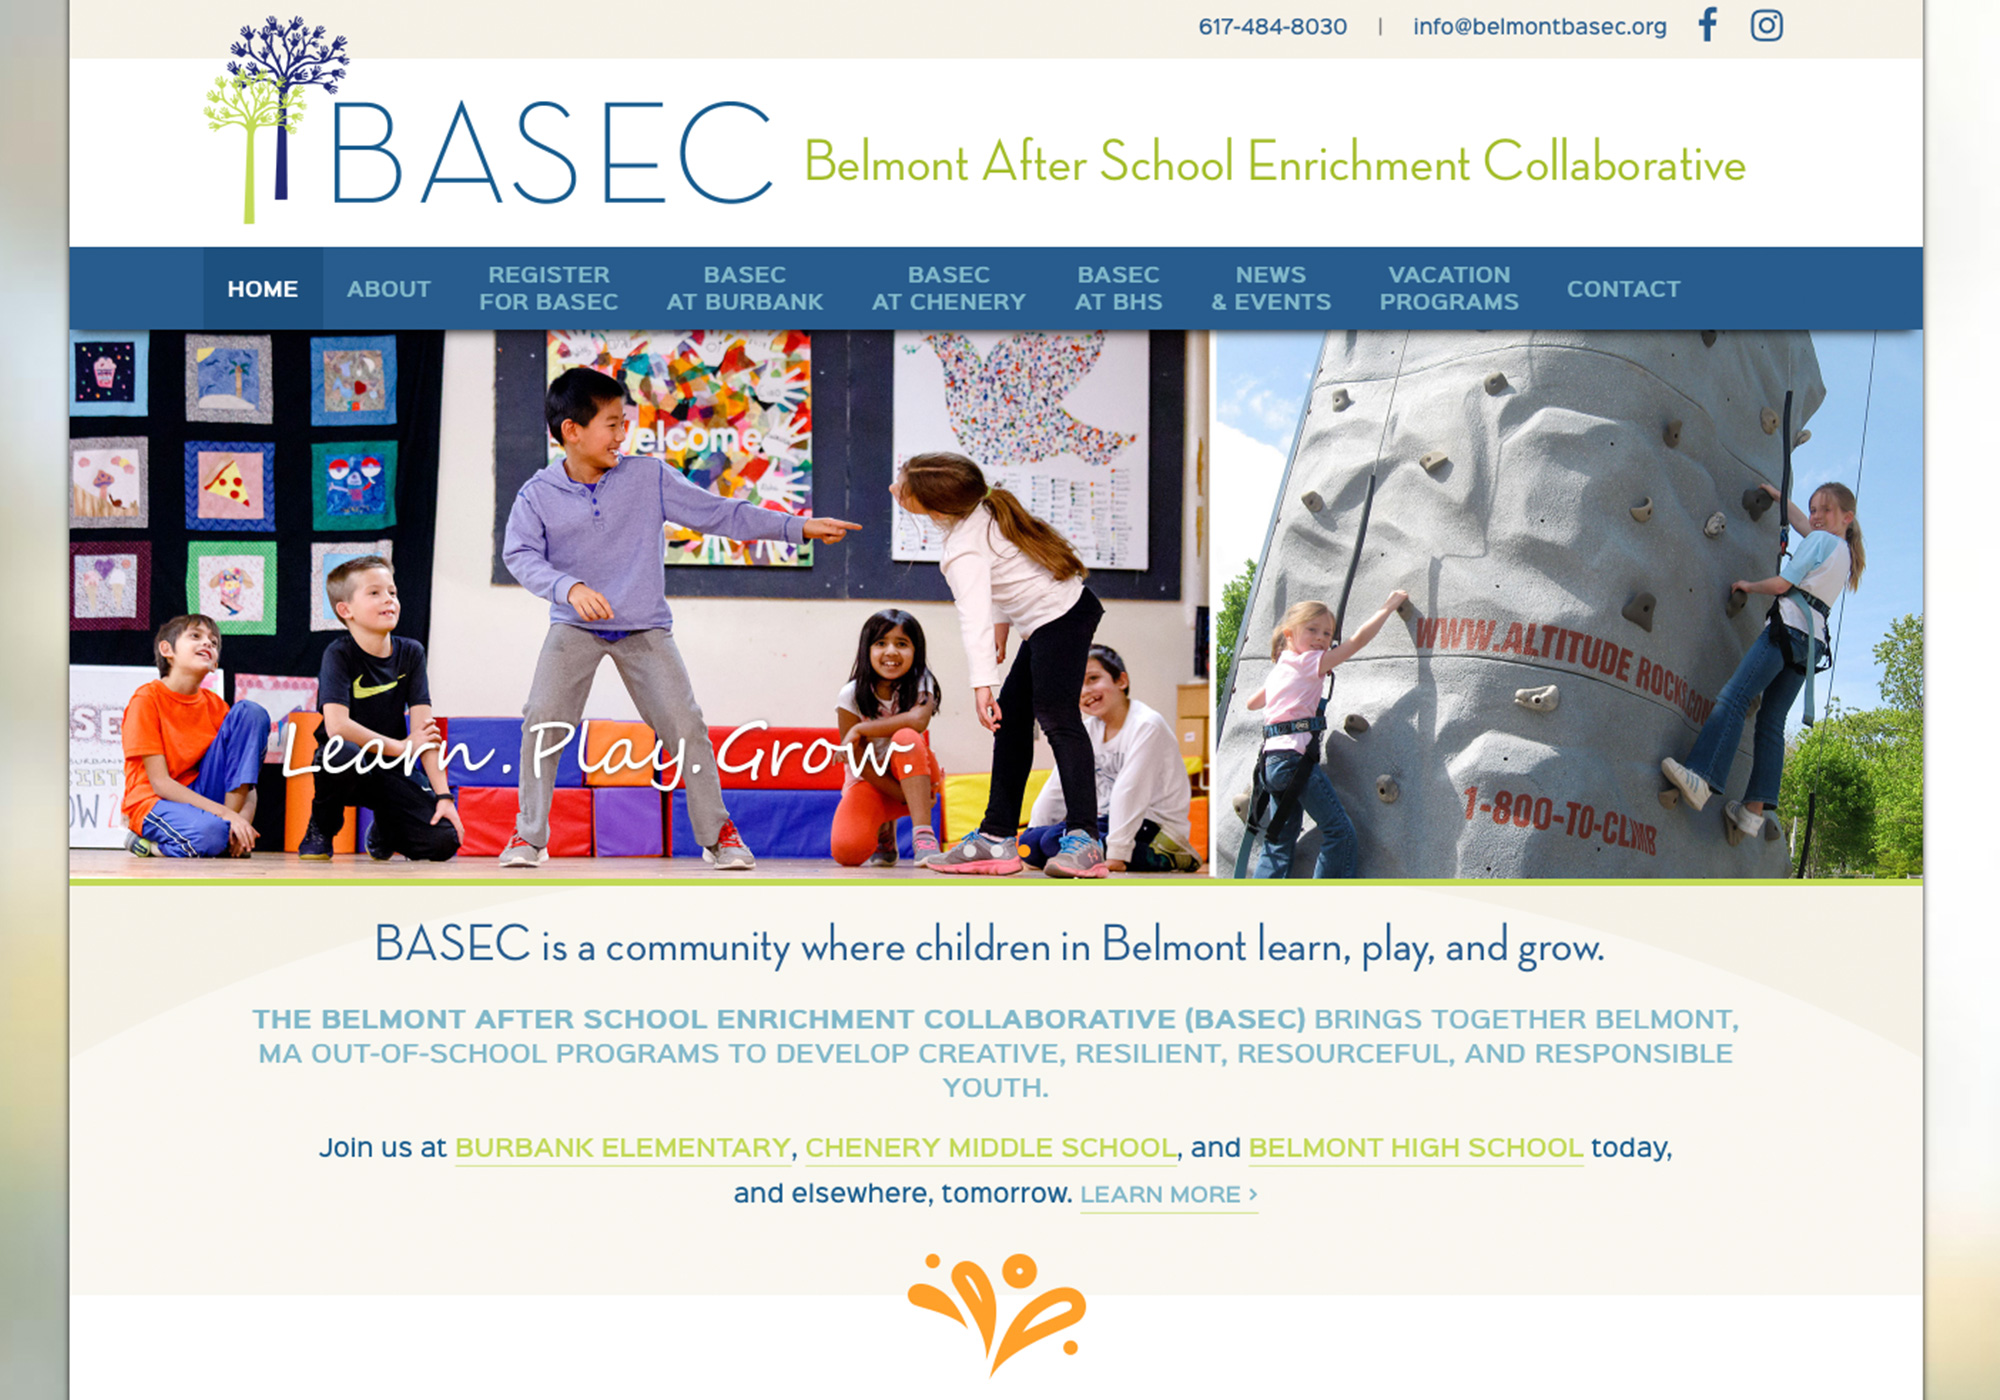 A screenshot of the SlickFish Studios designed and developed website for the Belmont After School Enrichment Collaborative.